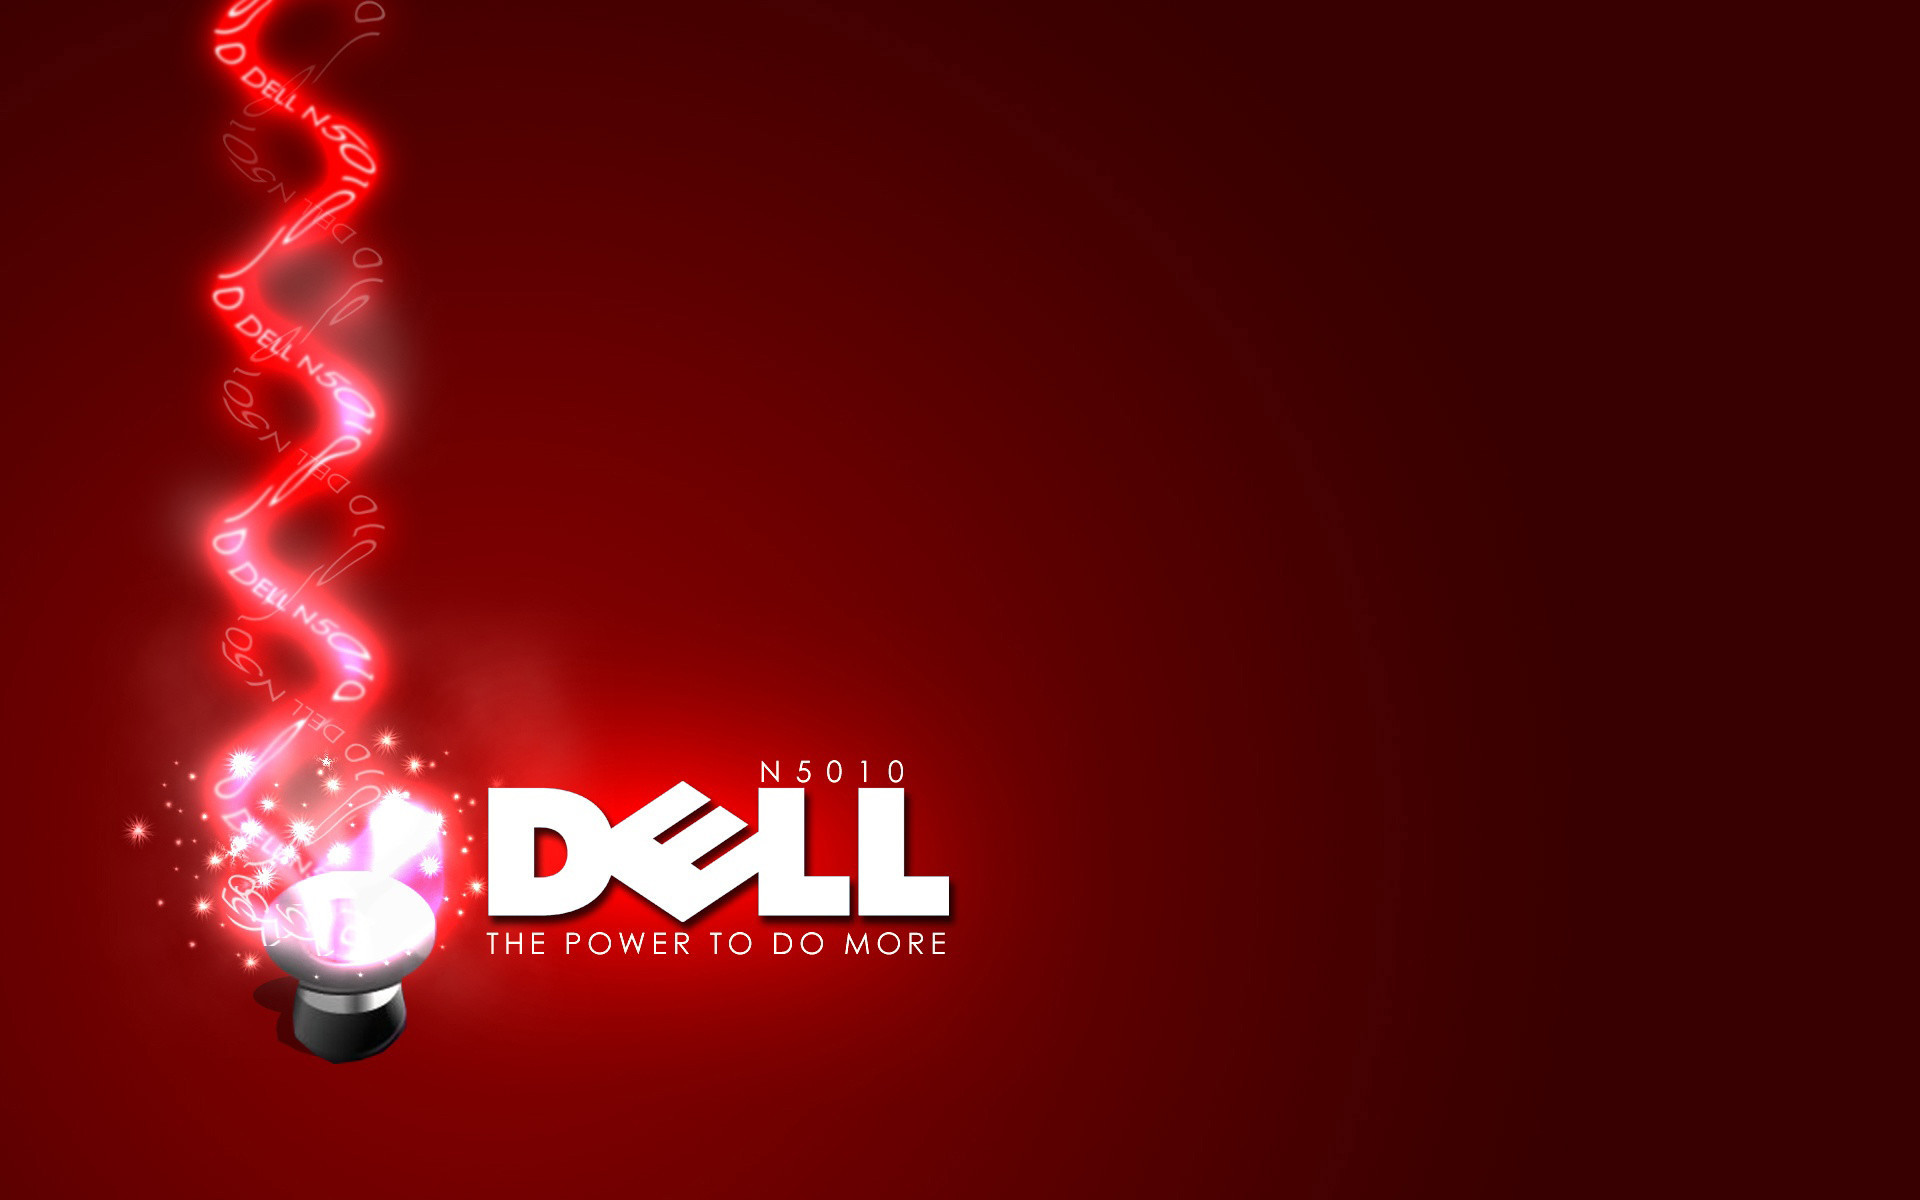 1920x1200   Dell Wallpaper Hdnbspfond ecran hd. Dell wallpapers  full hd wallpaper .